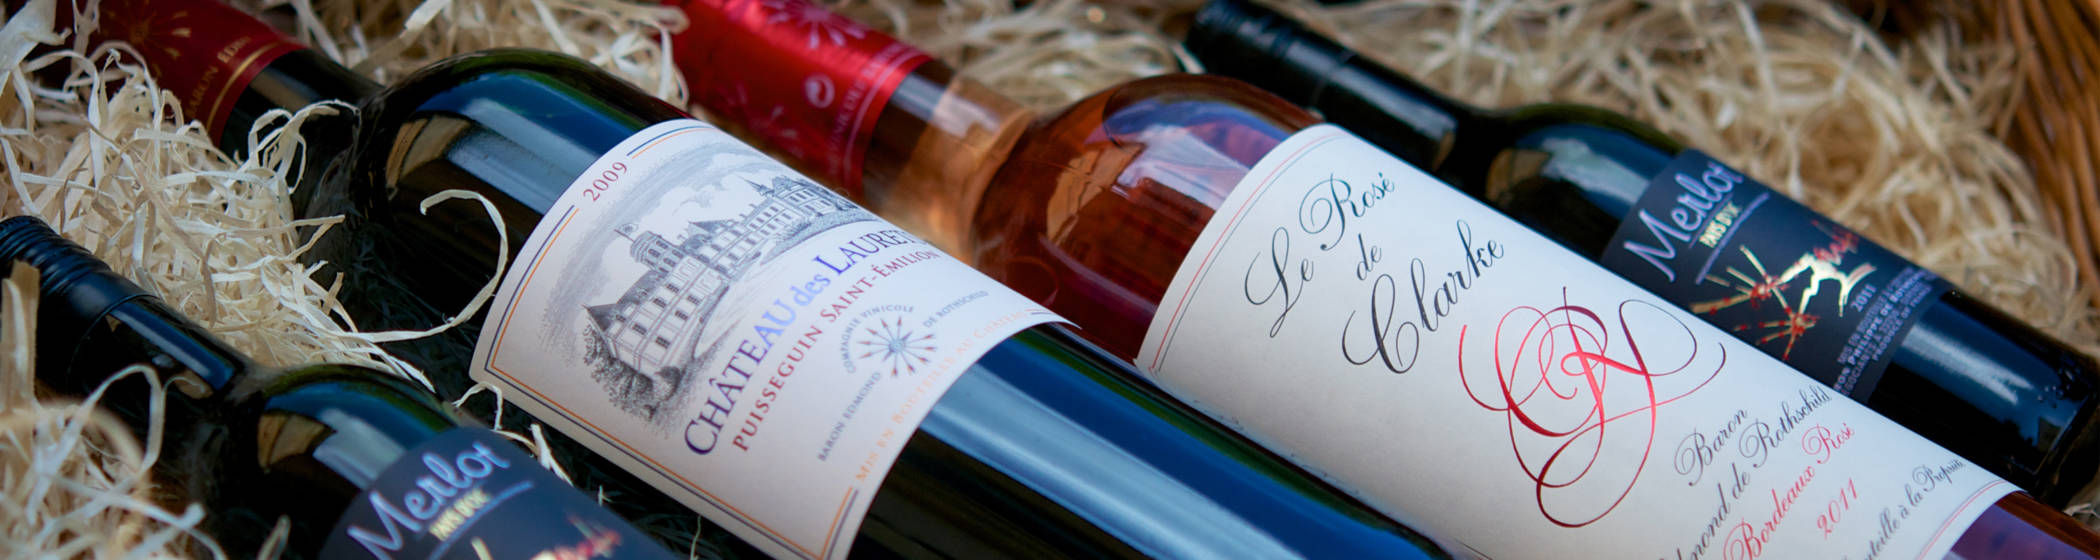 Shop-Wine-mixed-case-straw-summer-page-header-image-narrow-3000-800